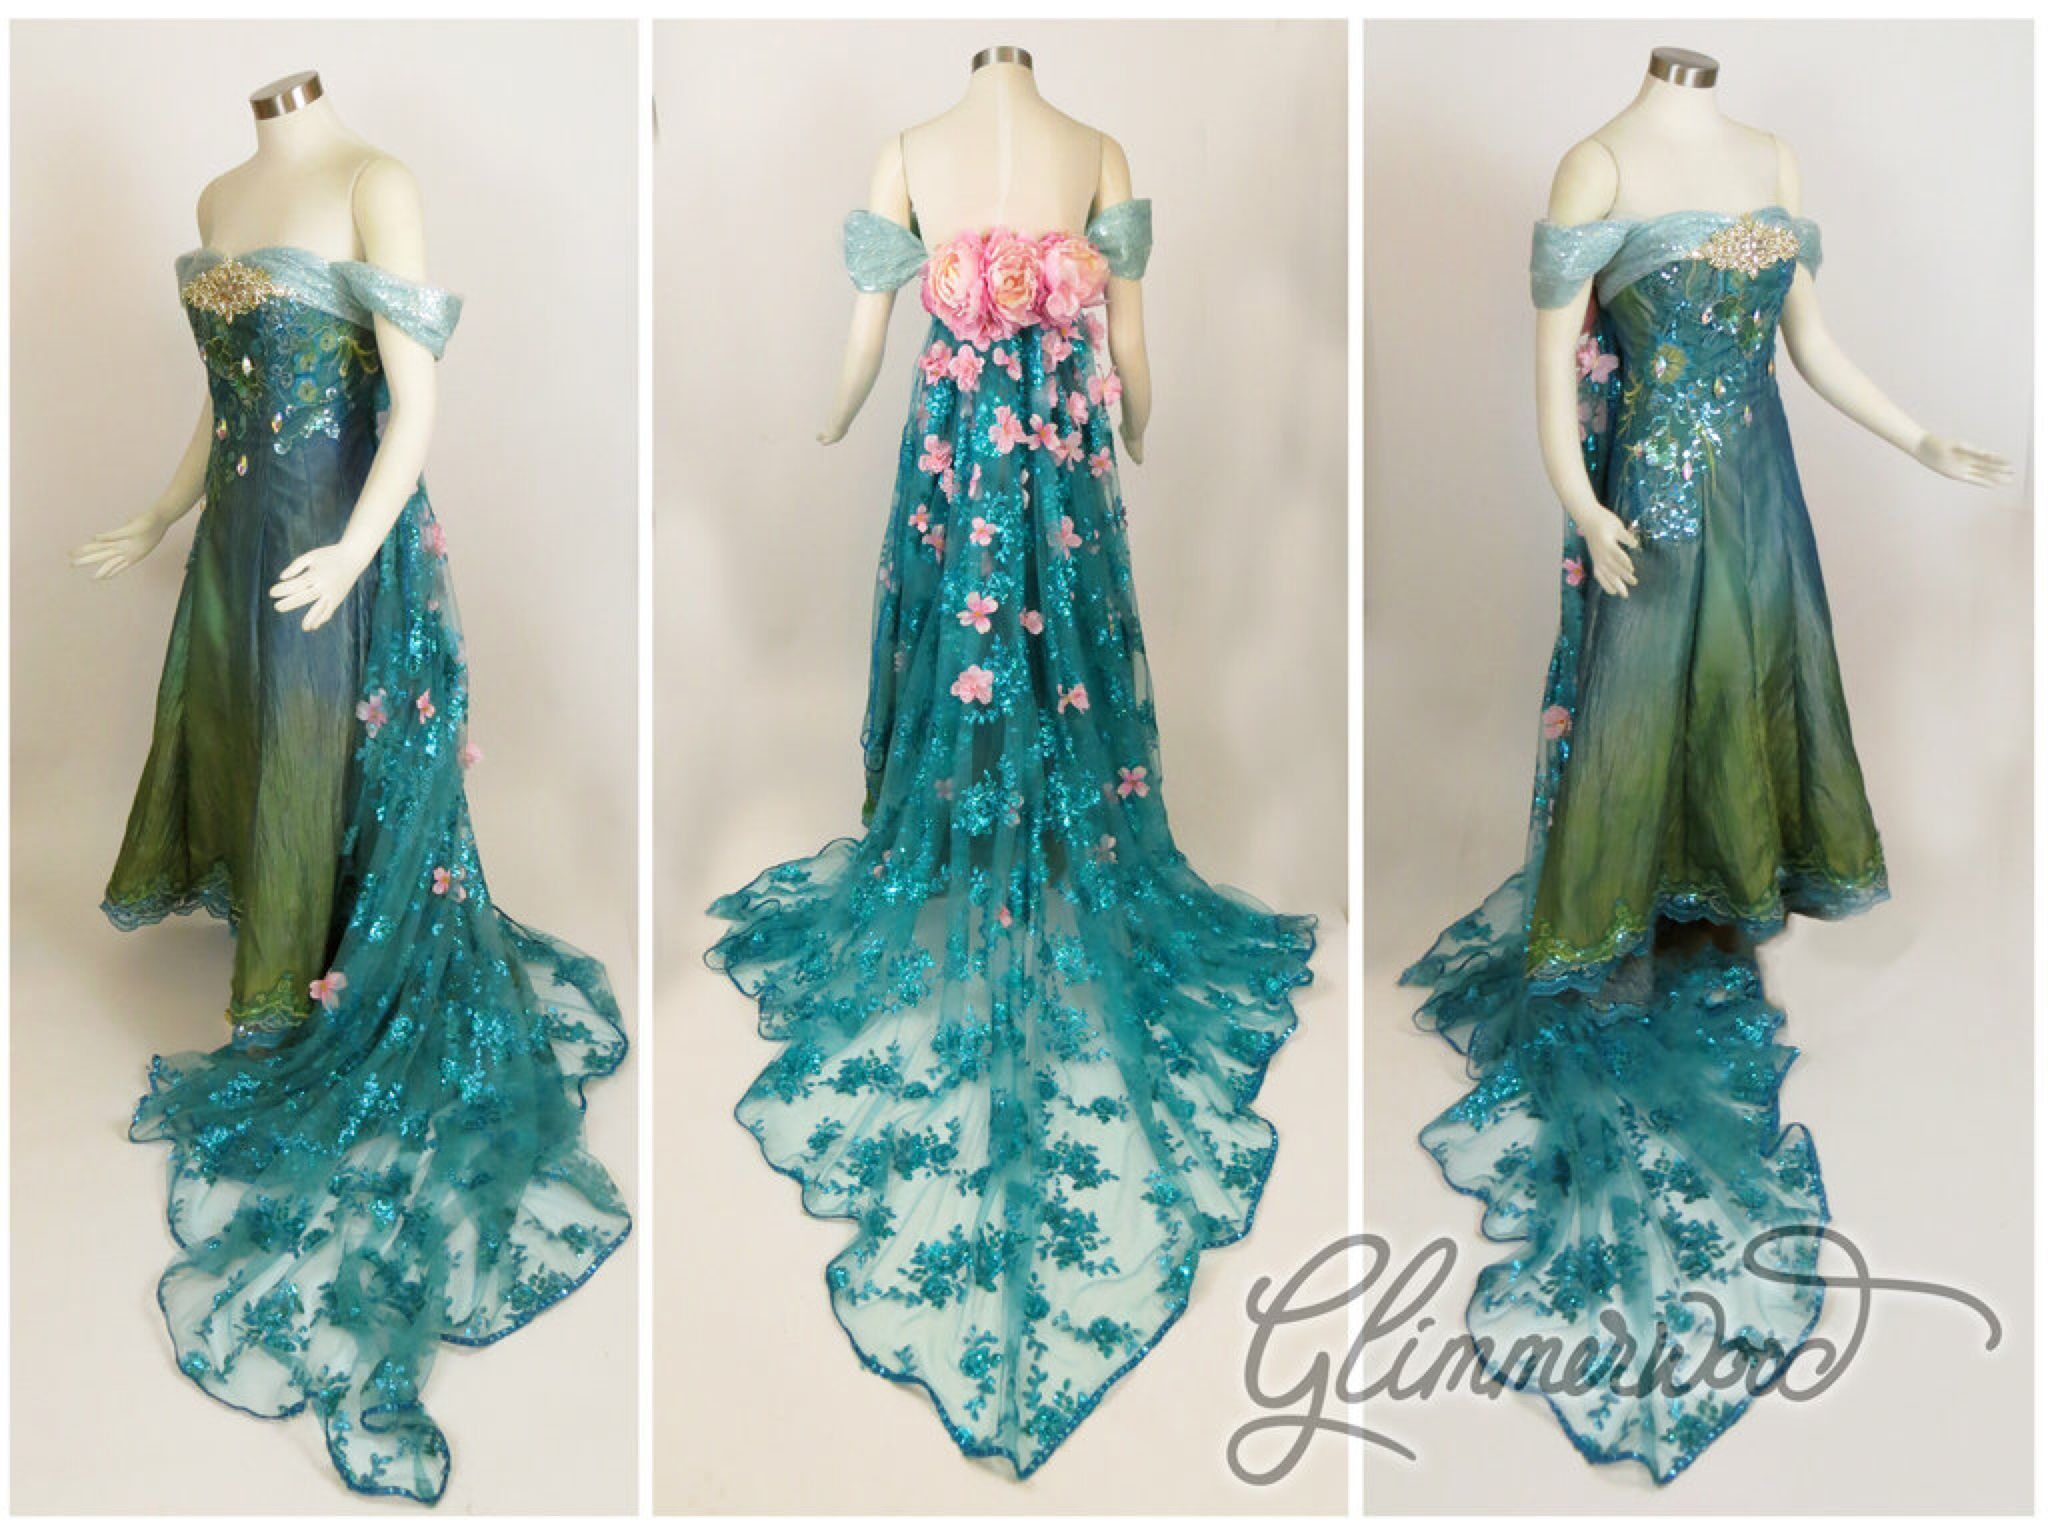 6ffa8247e0 Elsa s Spring Dress Cosplay from Frozen Fever by glimmerwood on  DeviantArt